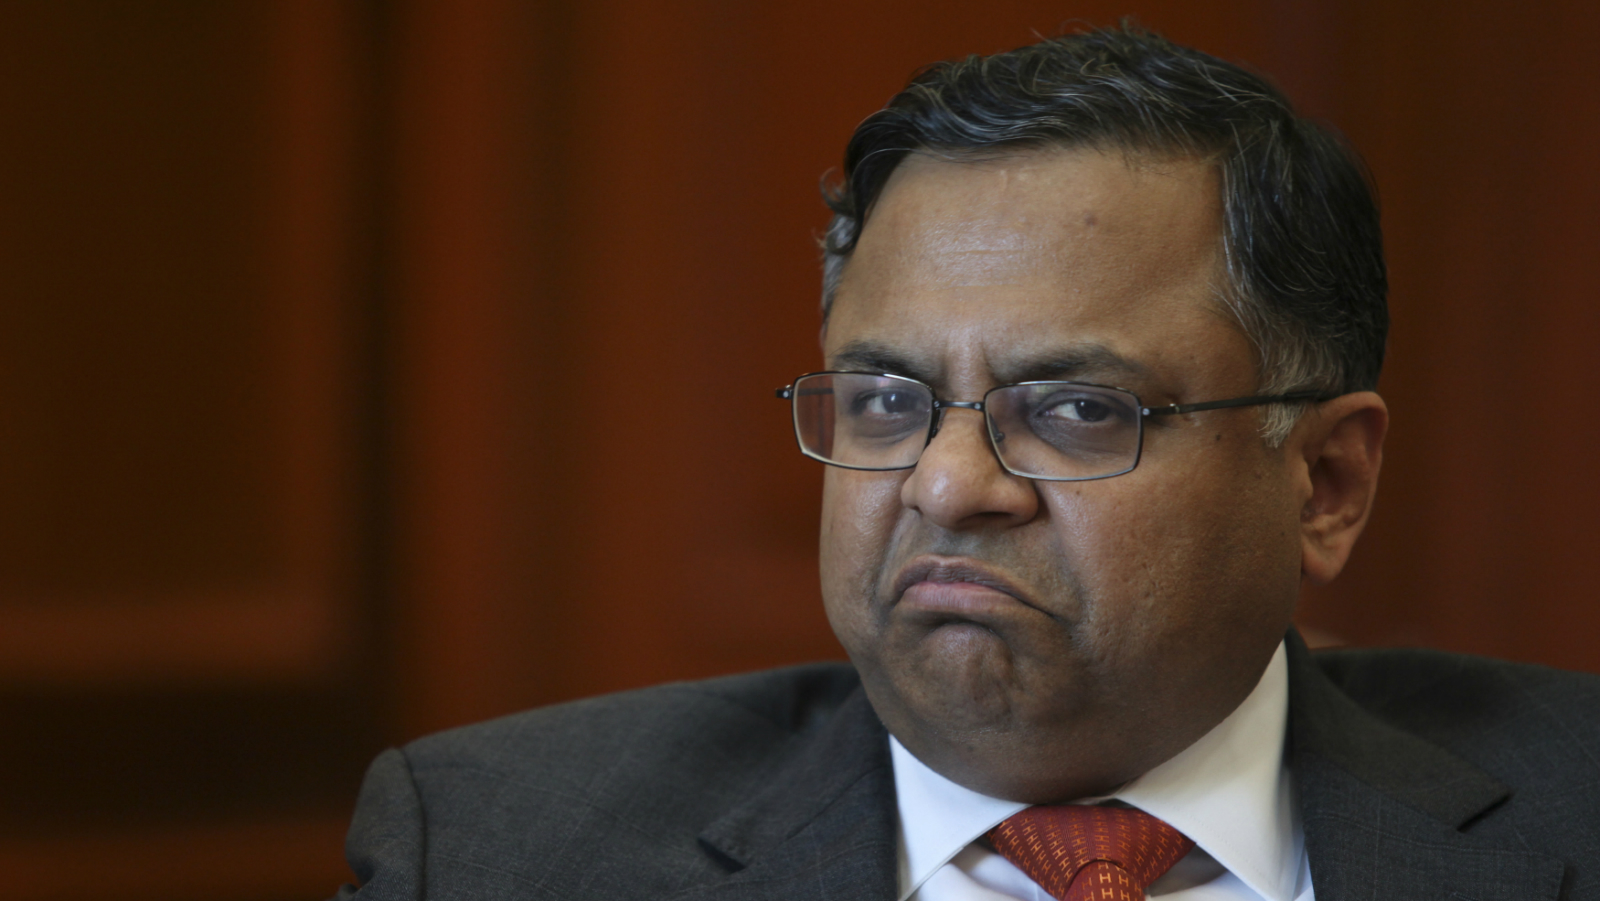 """Tata Consultancy Services (TCS) Chief Executive Officer N. Chandrasekaran gestures during an interview with Reuters in Mumbai January 18, 2012. TCS, India's largest software services exporter, has an order pipeline that is """"very healthy"""" across sectors, Chandrasekaran said in an interview on Wednesday. To match interview TATACONSULTANCY/"""